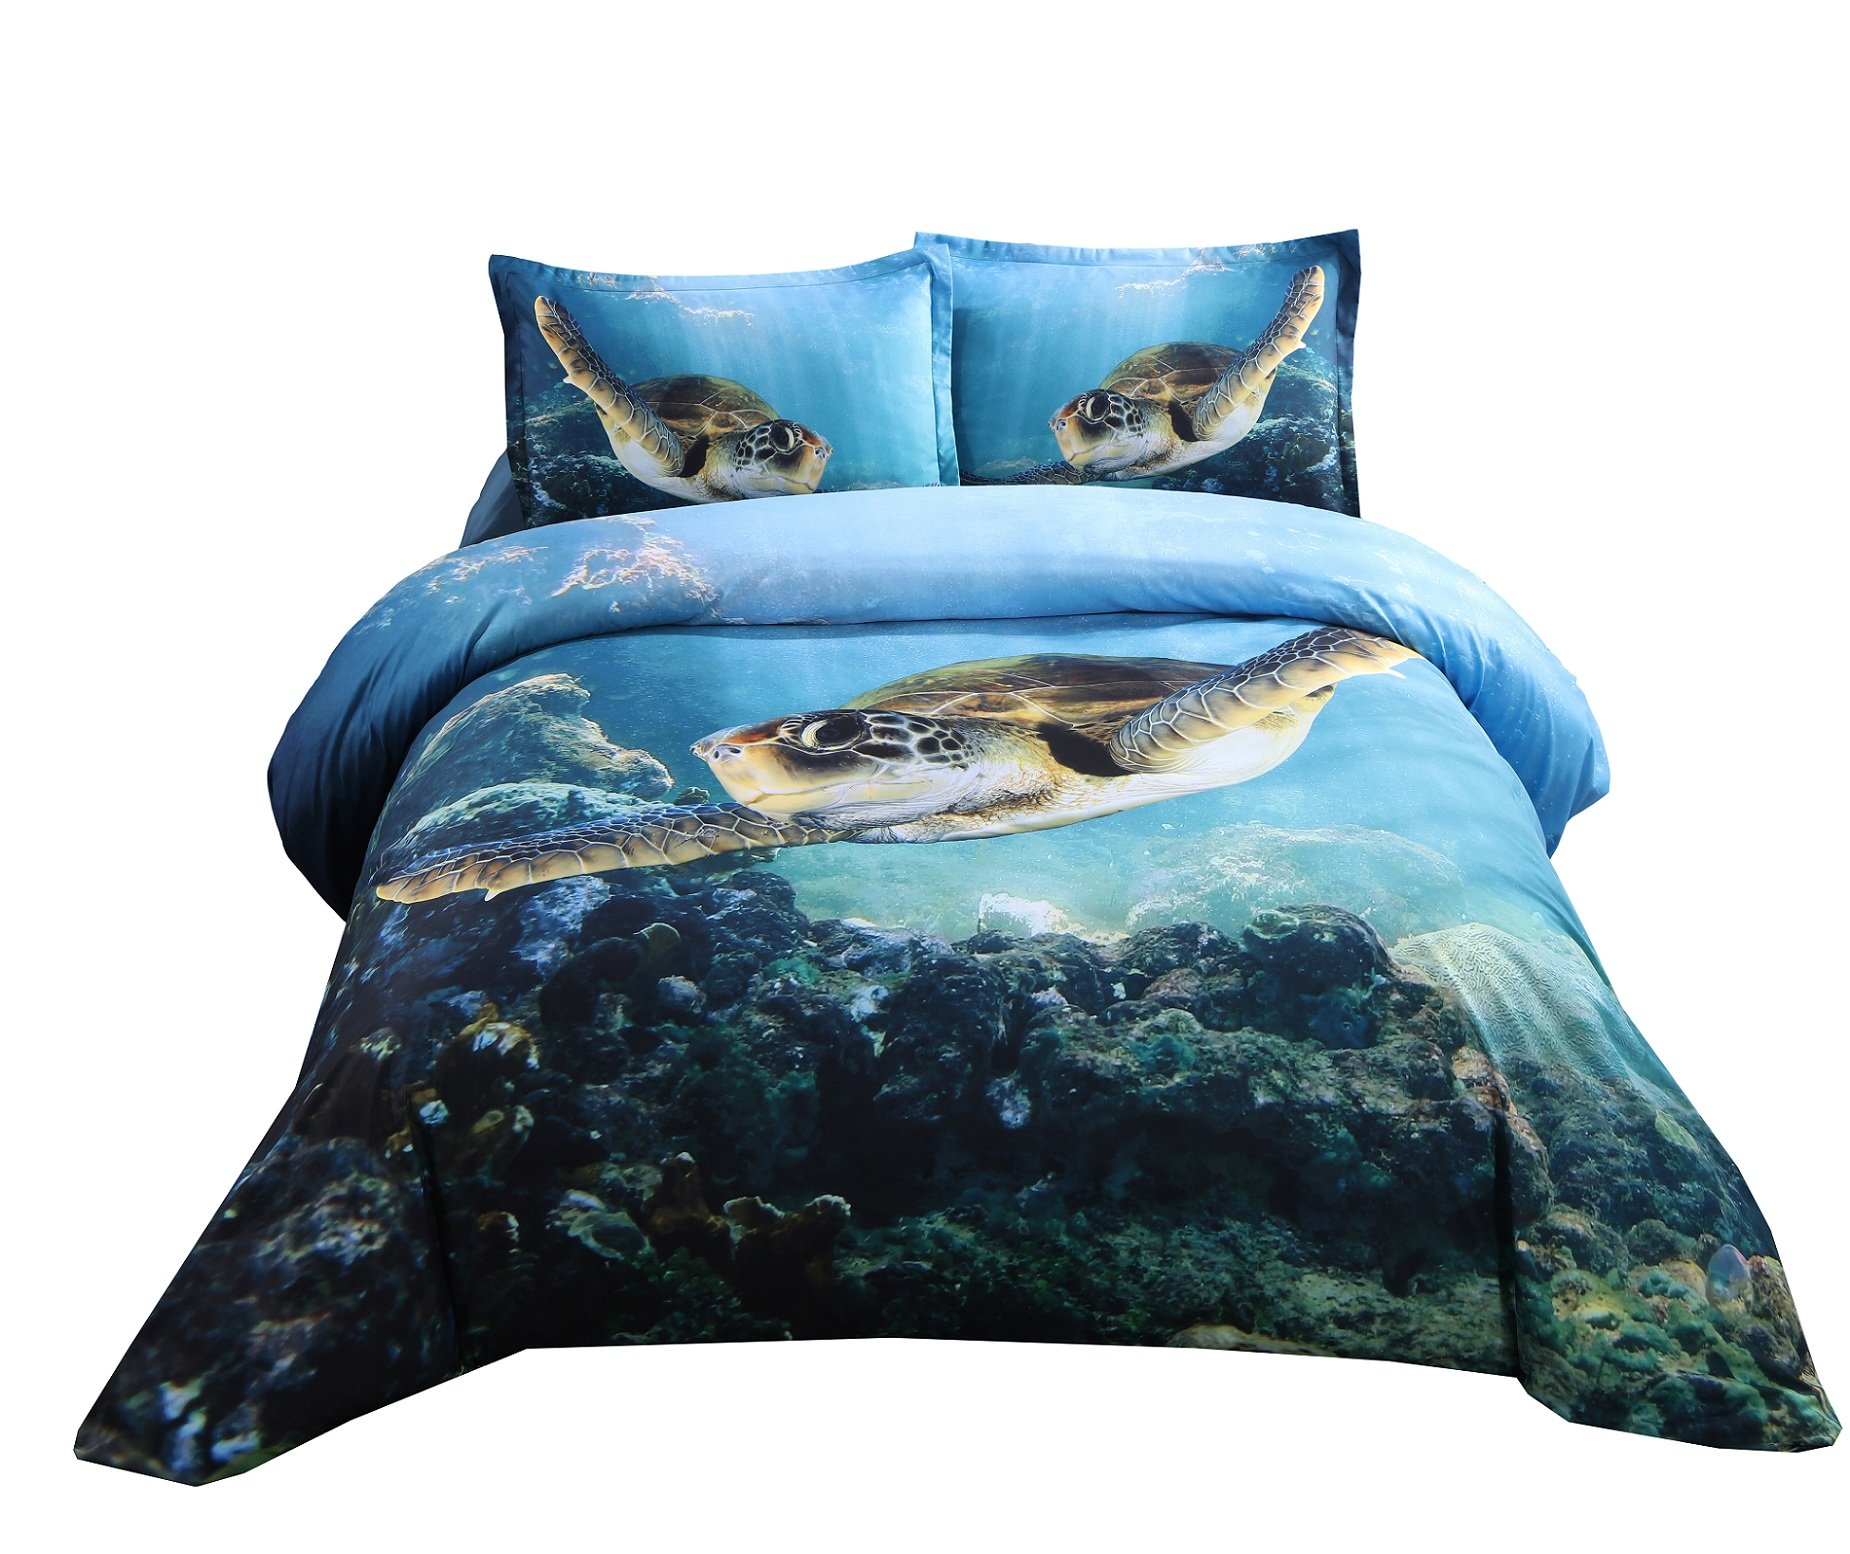 Ammybeddings 4 PCs 3D Comforter Cover Sets Full Size Swimming Sea Turtle Digital Bedding for Kids High Definition Ocean Animal Blue (No Comforter No Fitted Sheet)